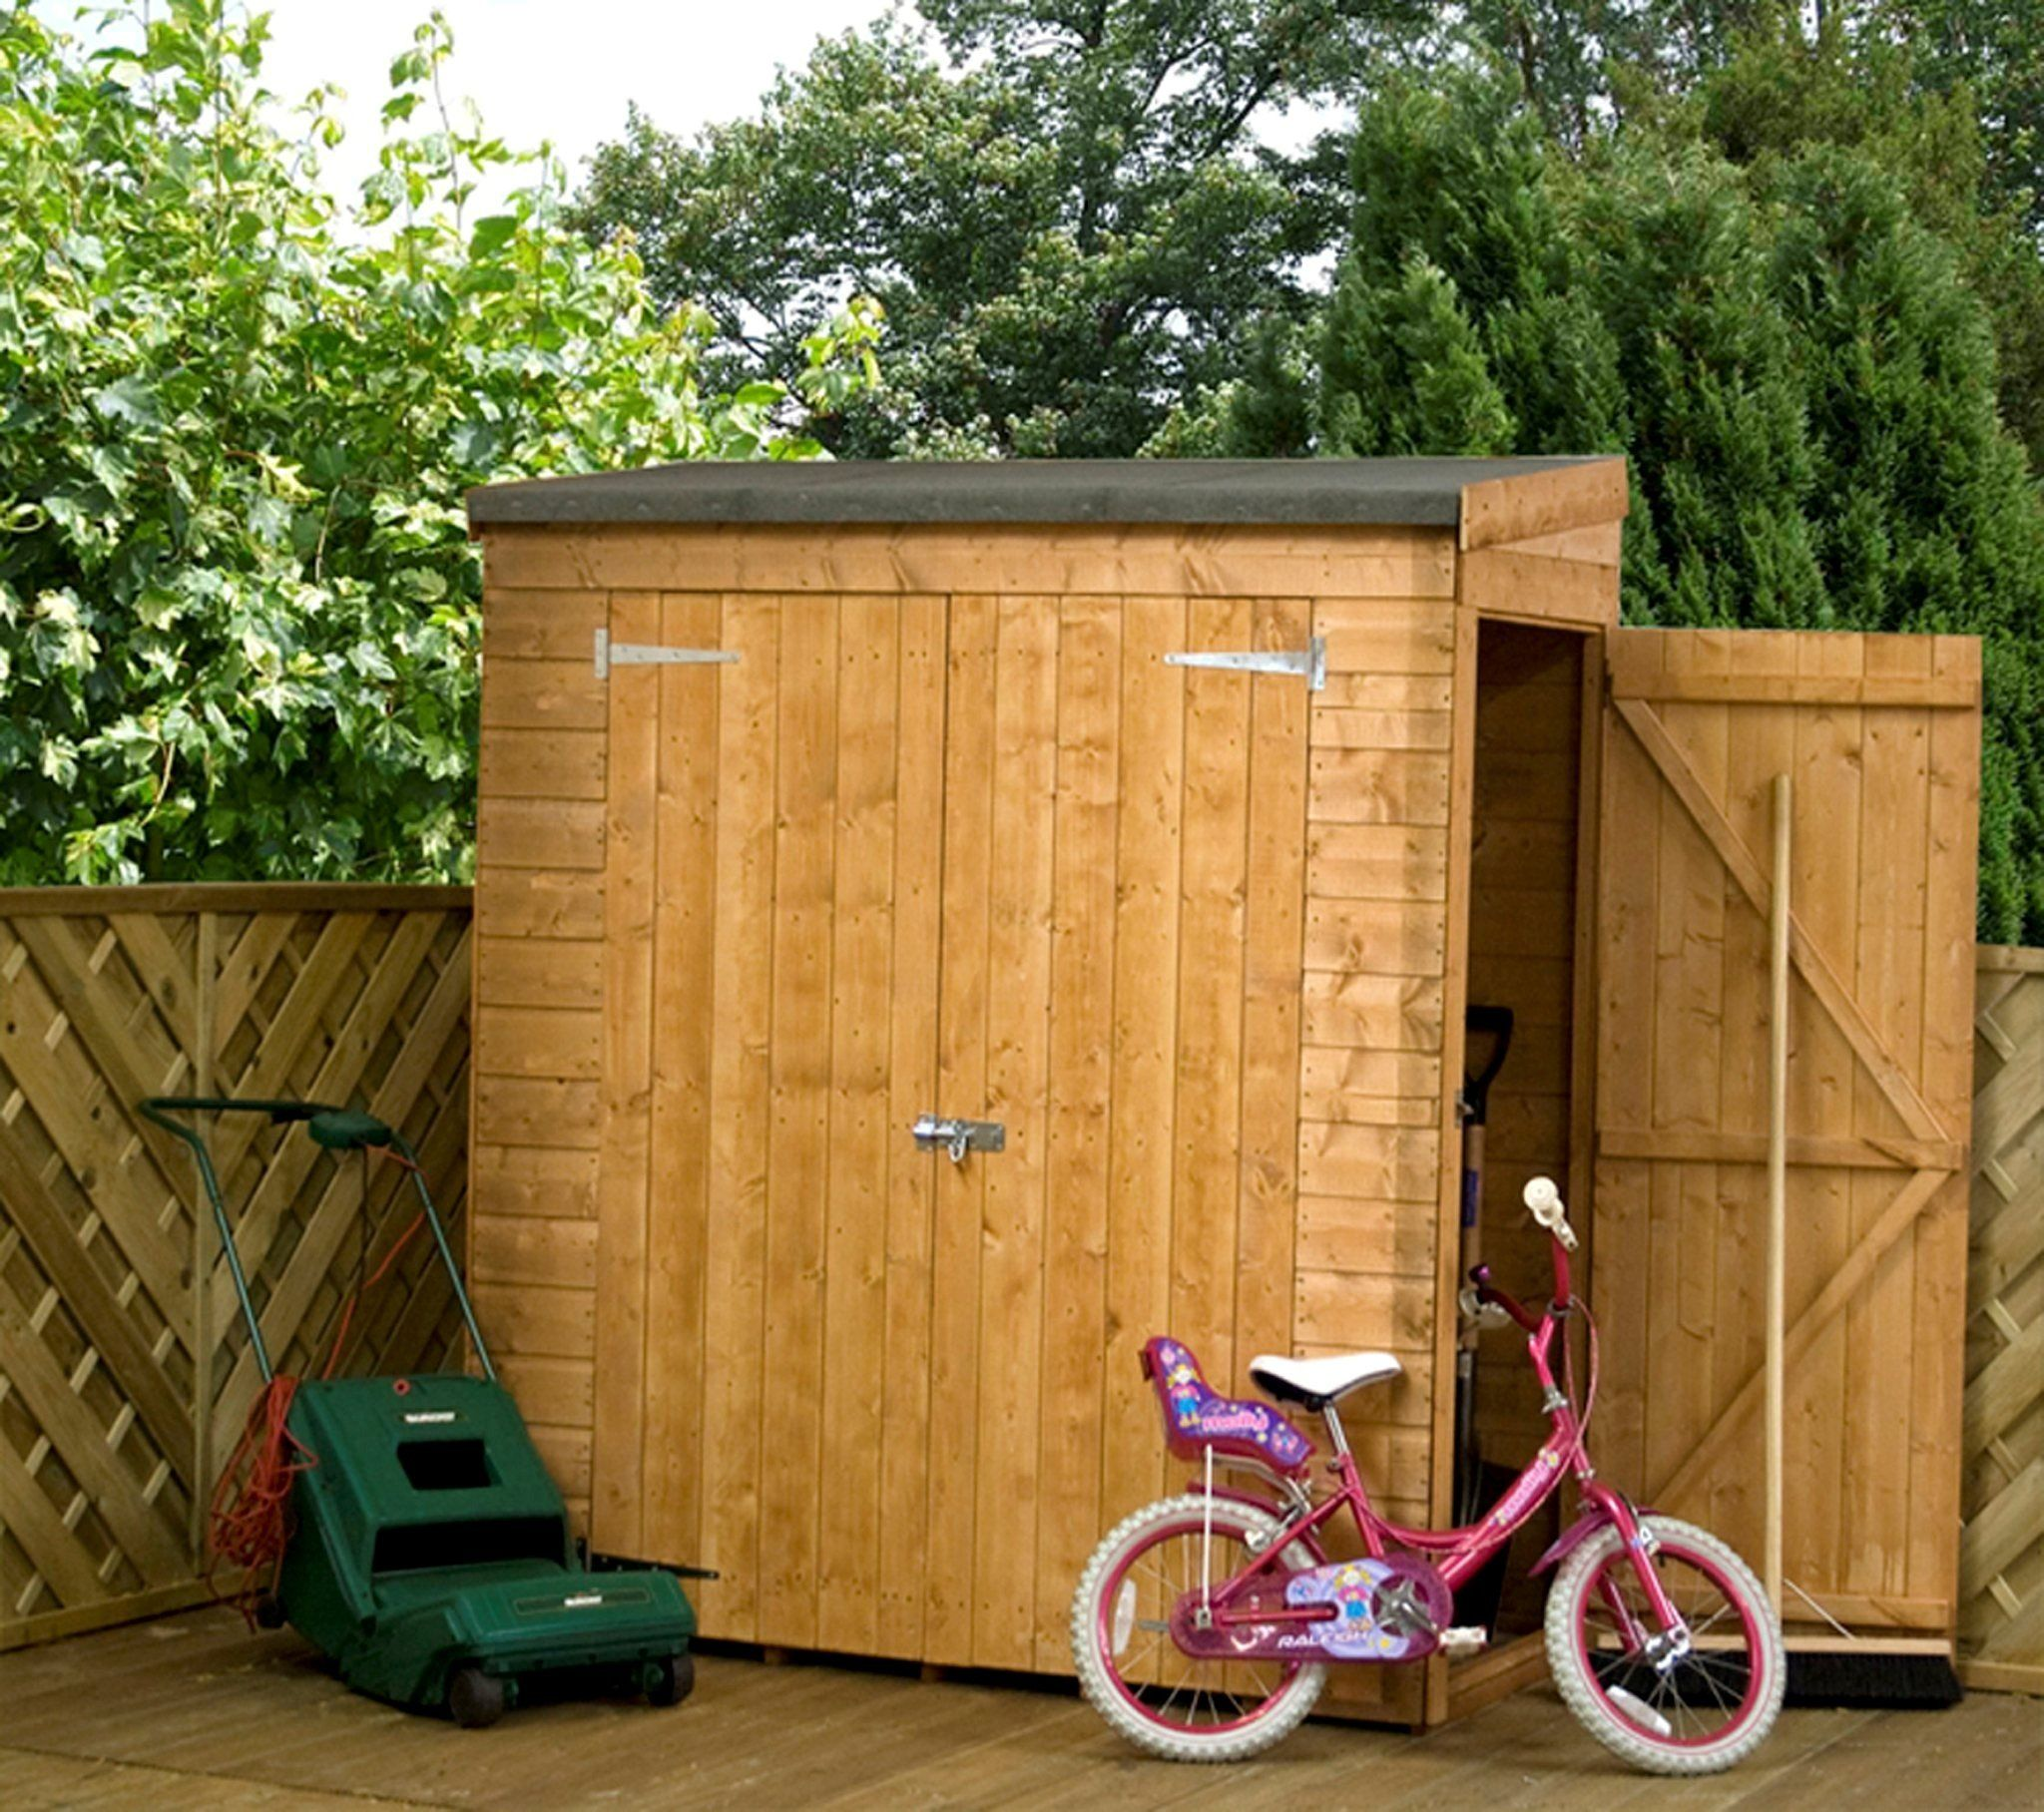 6 Ft W X 2 5 Ft D Wooden Lean To Shed Front And Side Door Shiplap Sheds Garden Storage Shed Bicycle Storage Shed